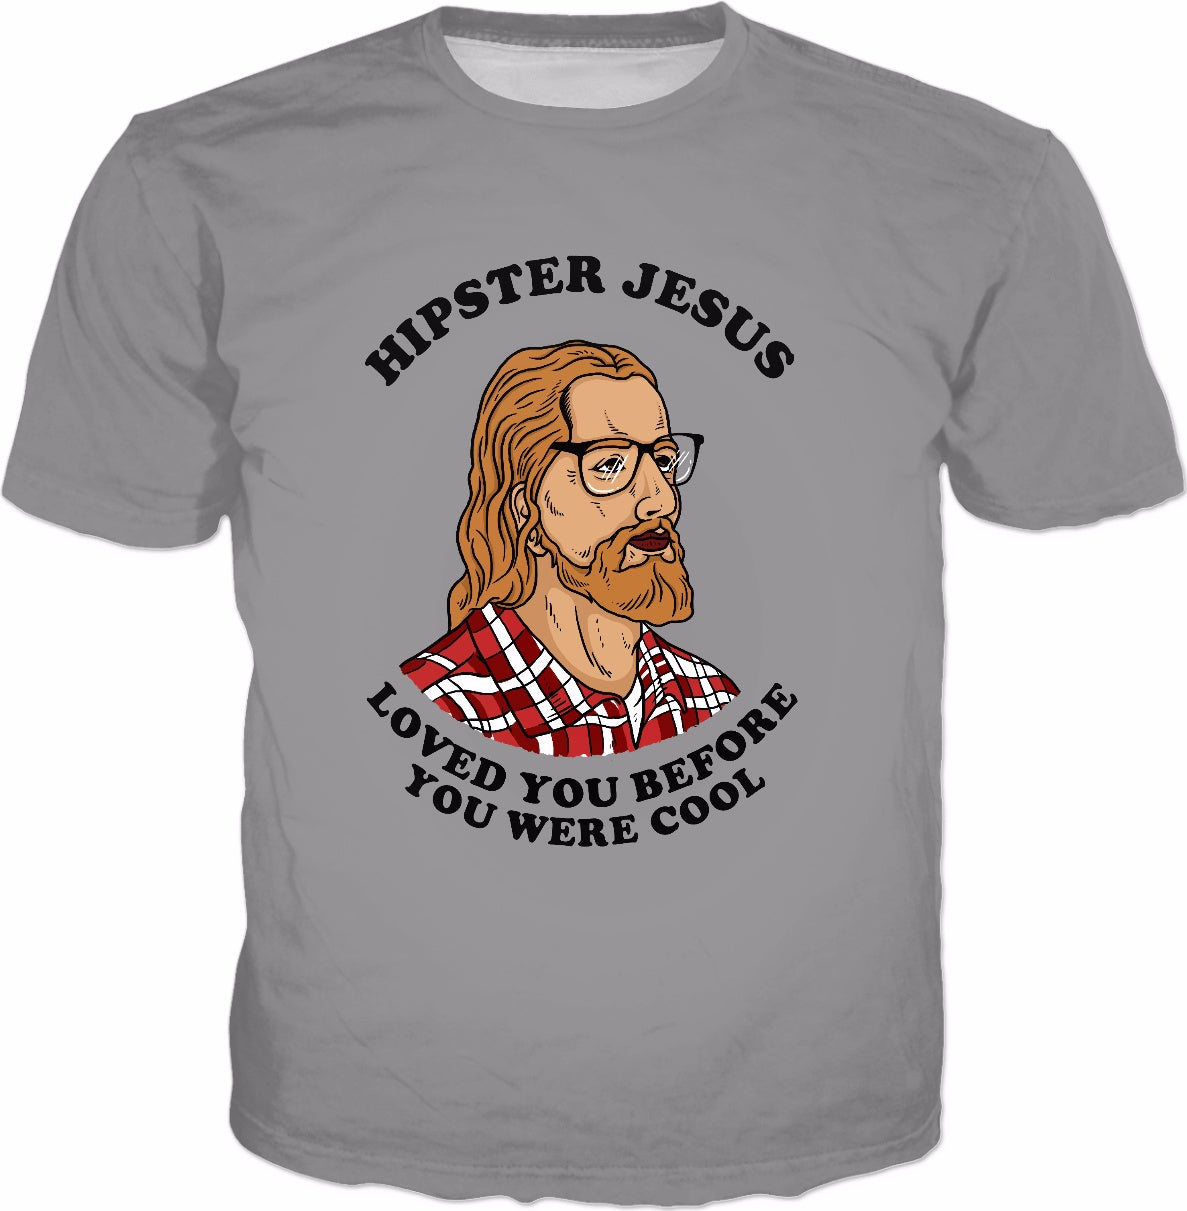 Hipster Jesus Loved You Before You Were Cool T-Shirt - Funny